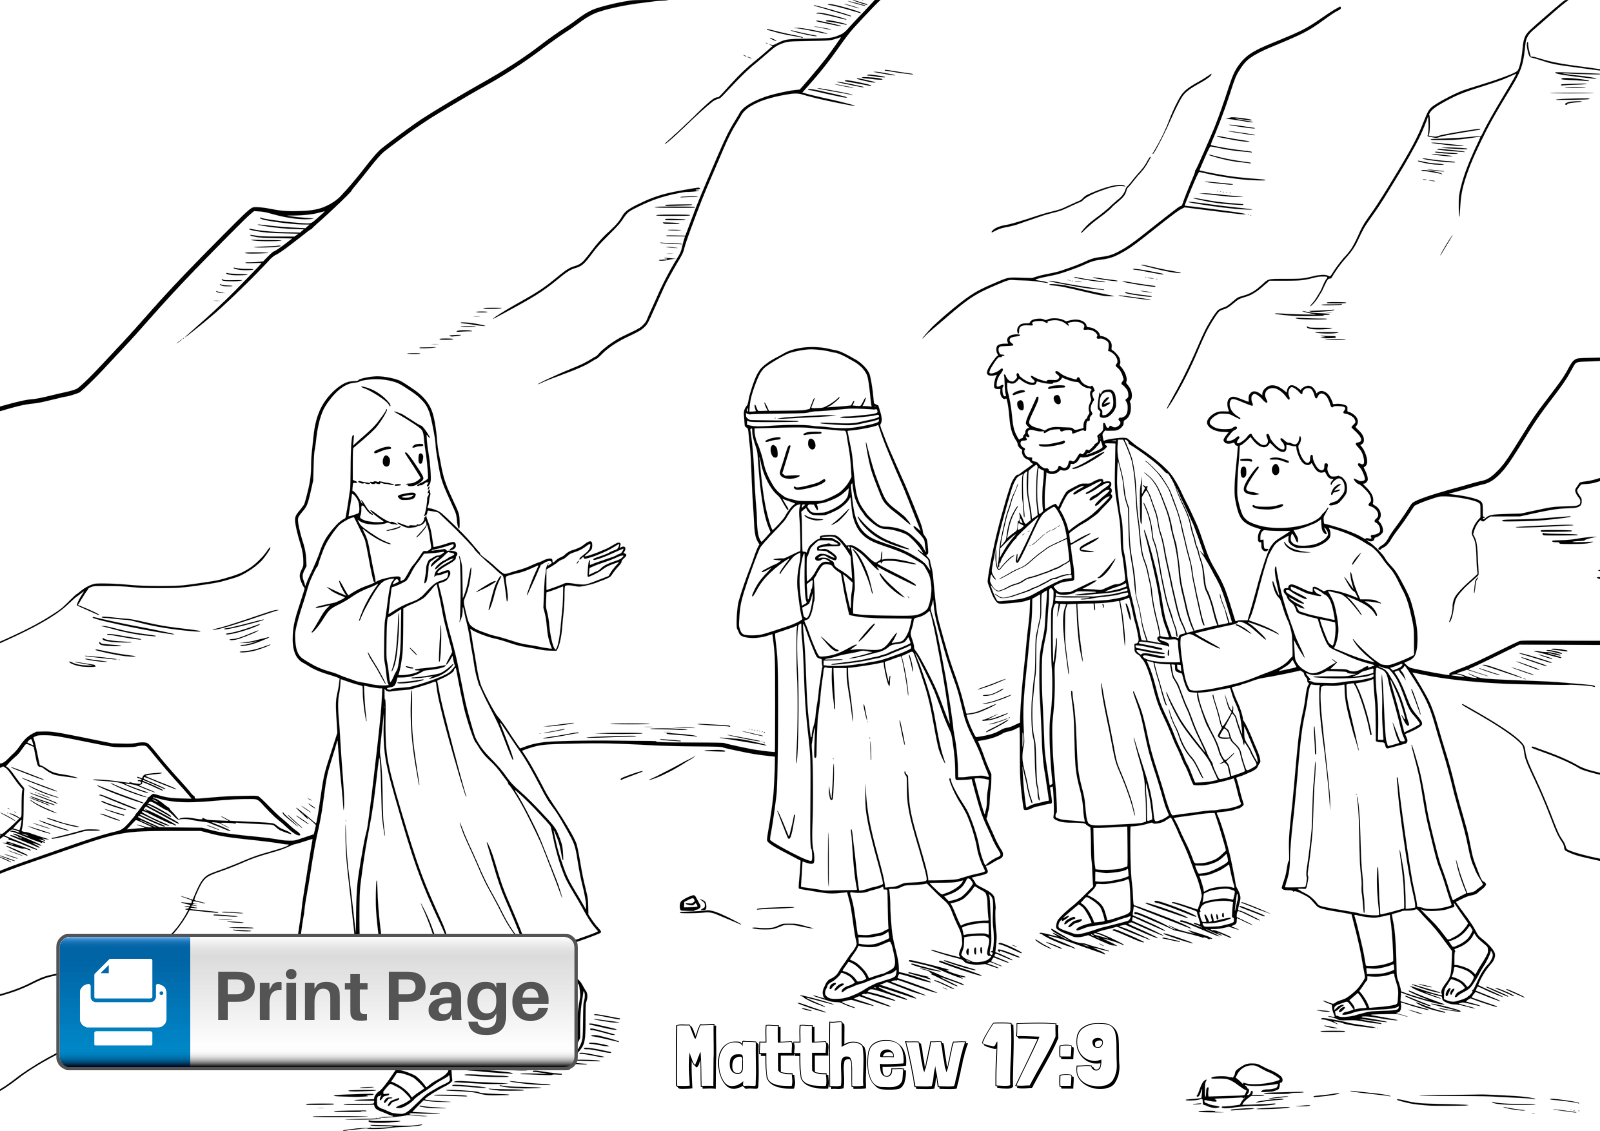 the transfiguration of jesus coloring page transfiguration coloring page page the transfiguration coloring jesus of